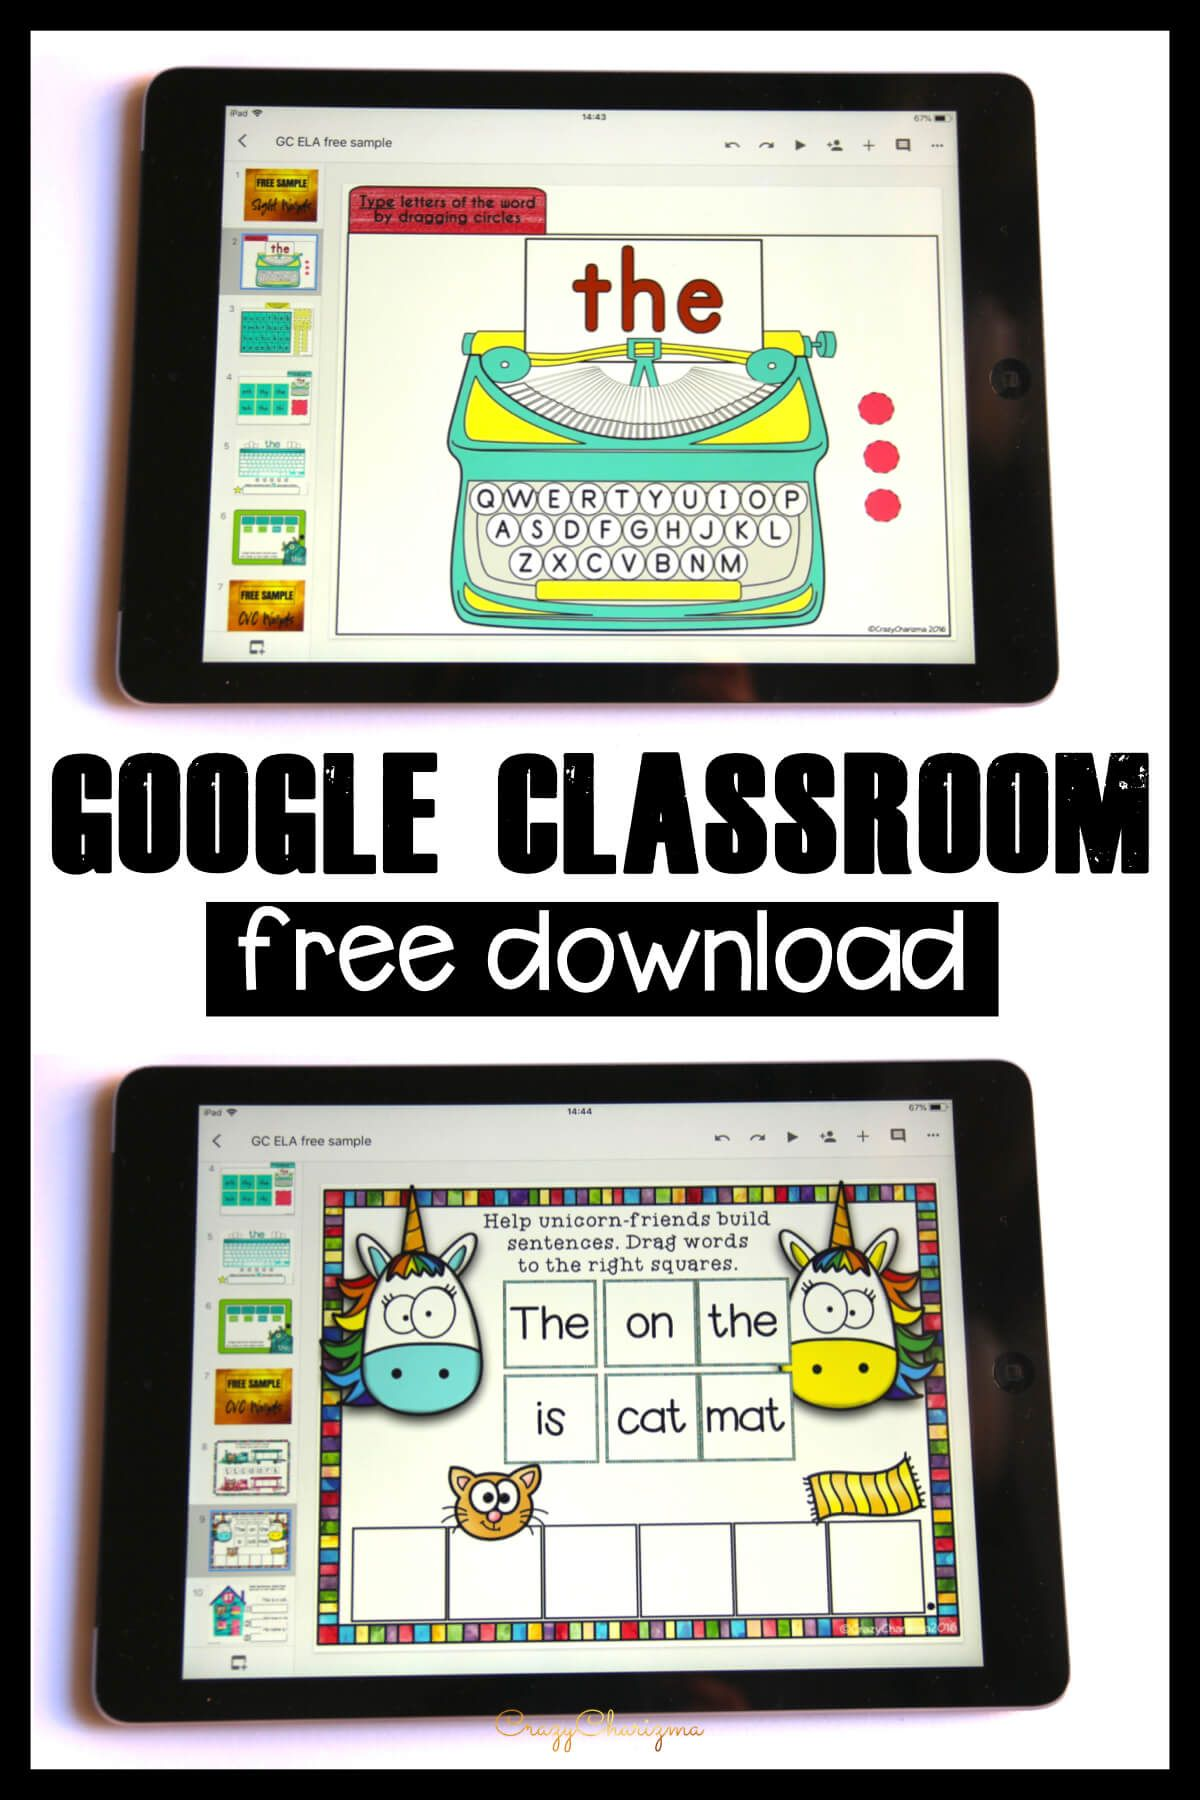 Download FREE activities for Google Classroom!